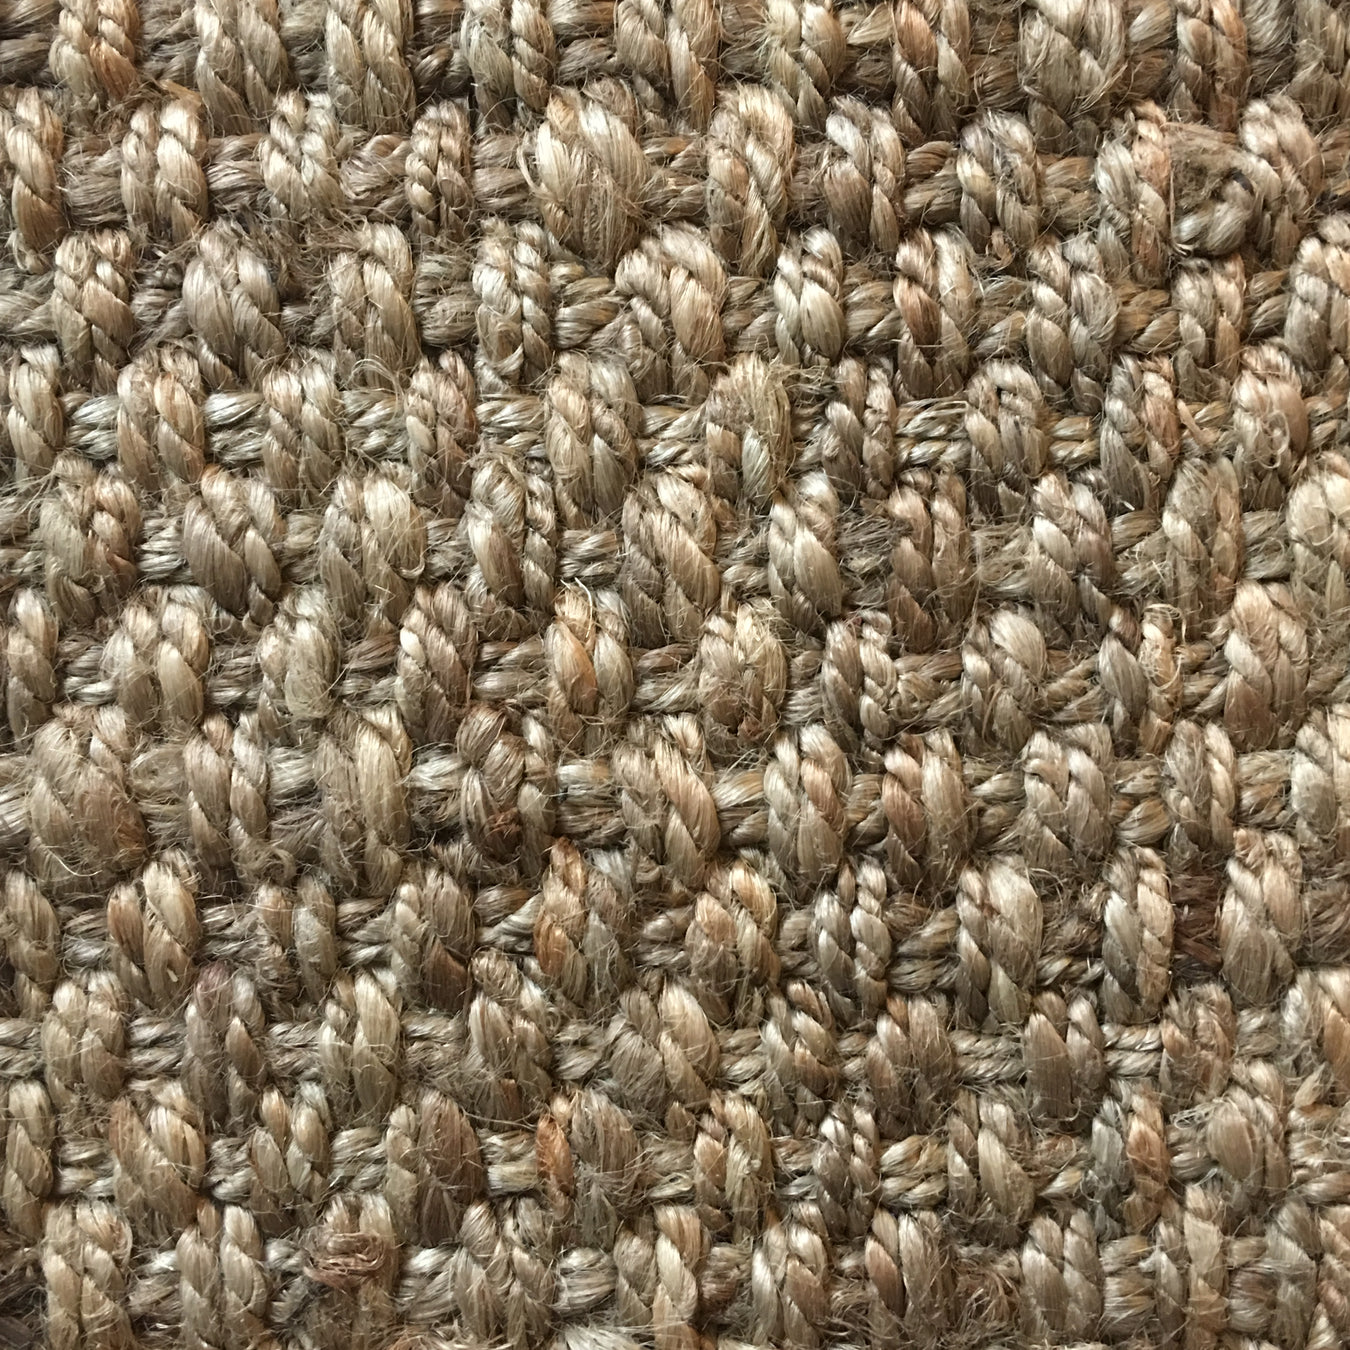 Fibreworks® Custom 100% Jute Rug with Matching Serged Border or Other Border Options- Cross Stitch 207 Natural